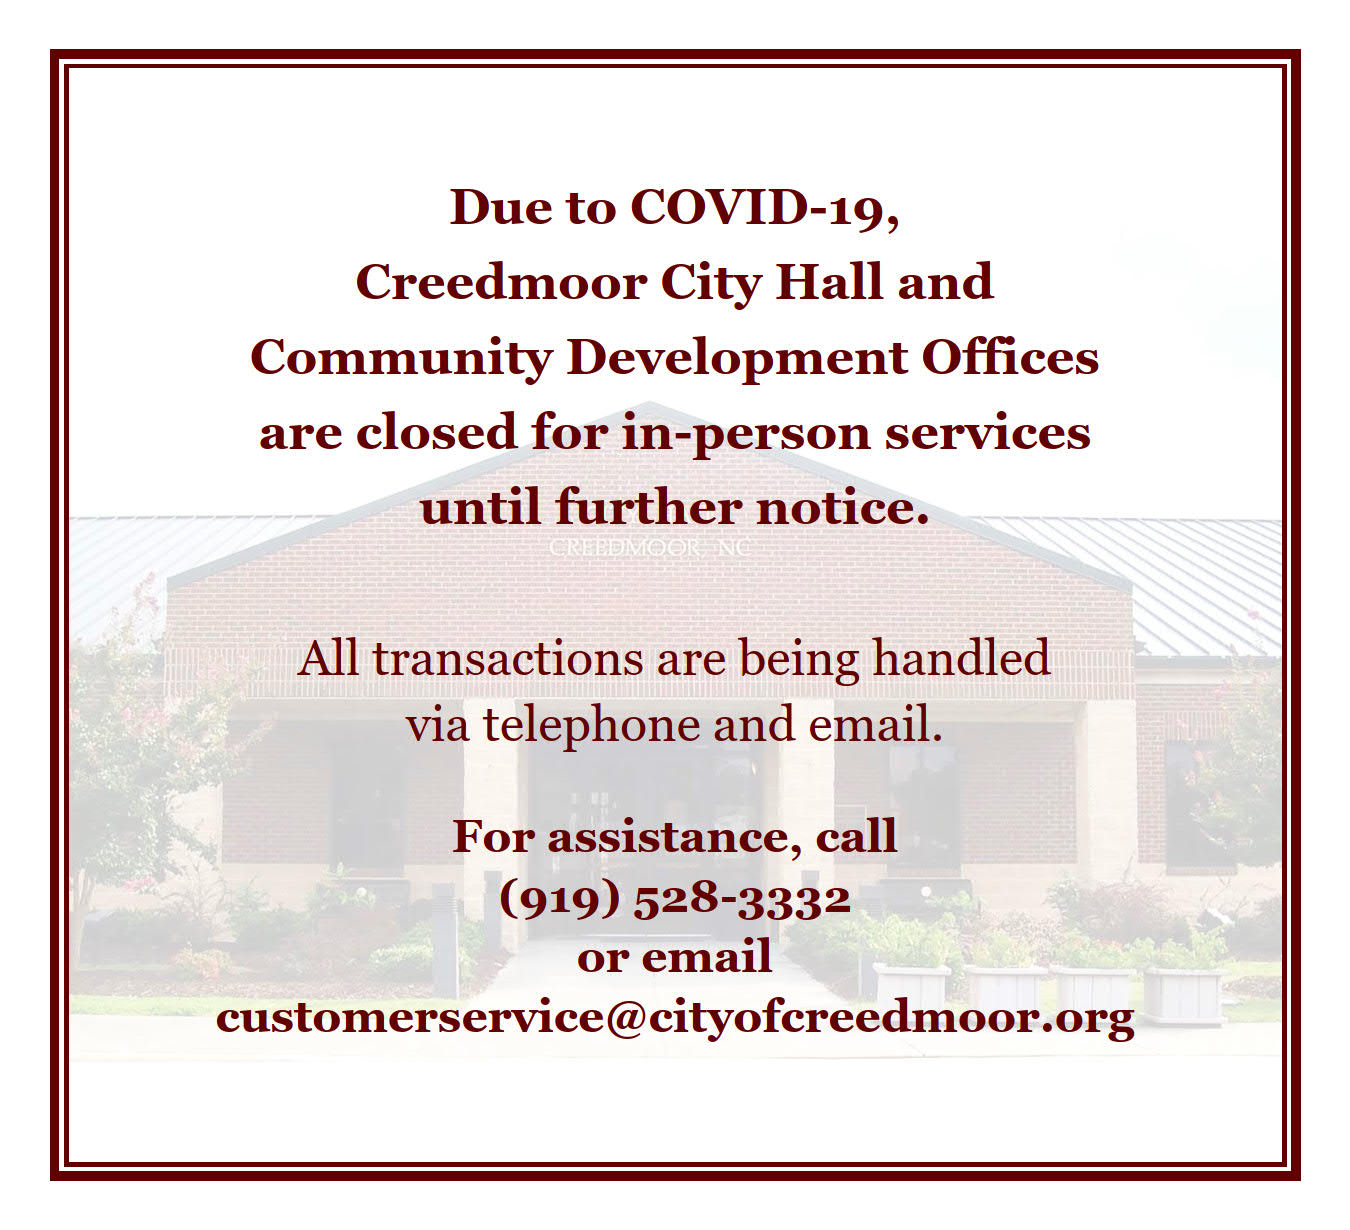 Website Announcement for COVID-19